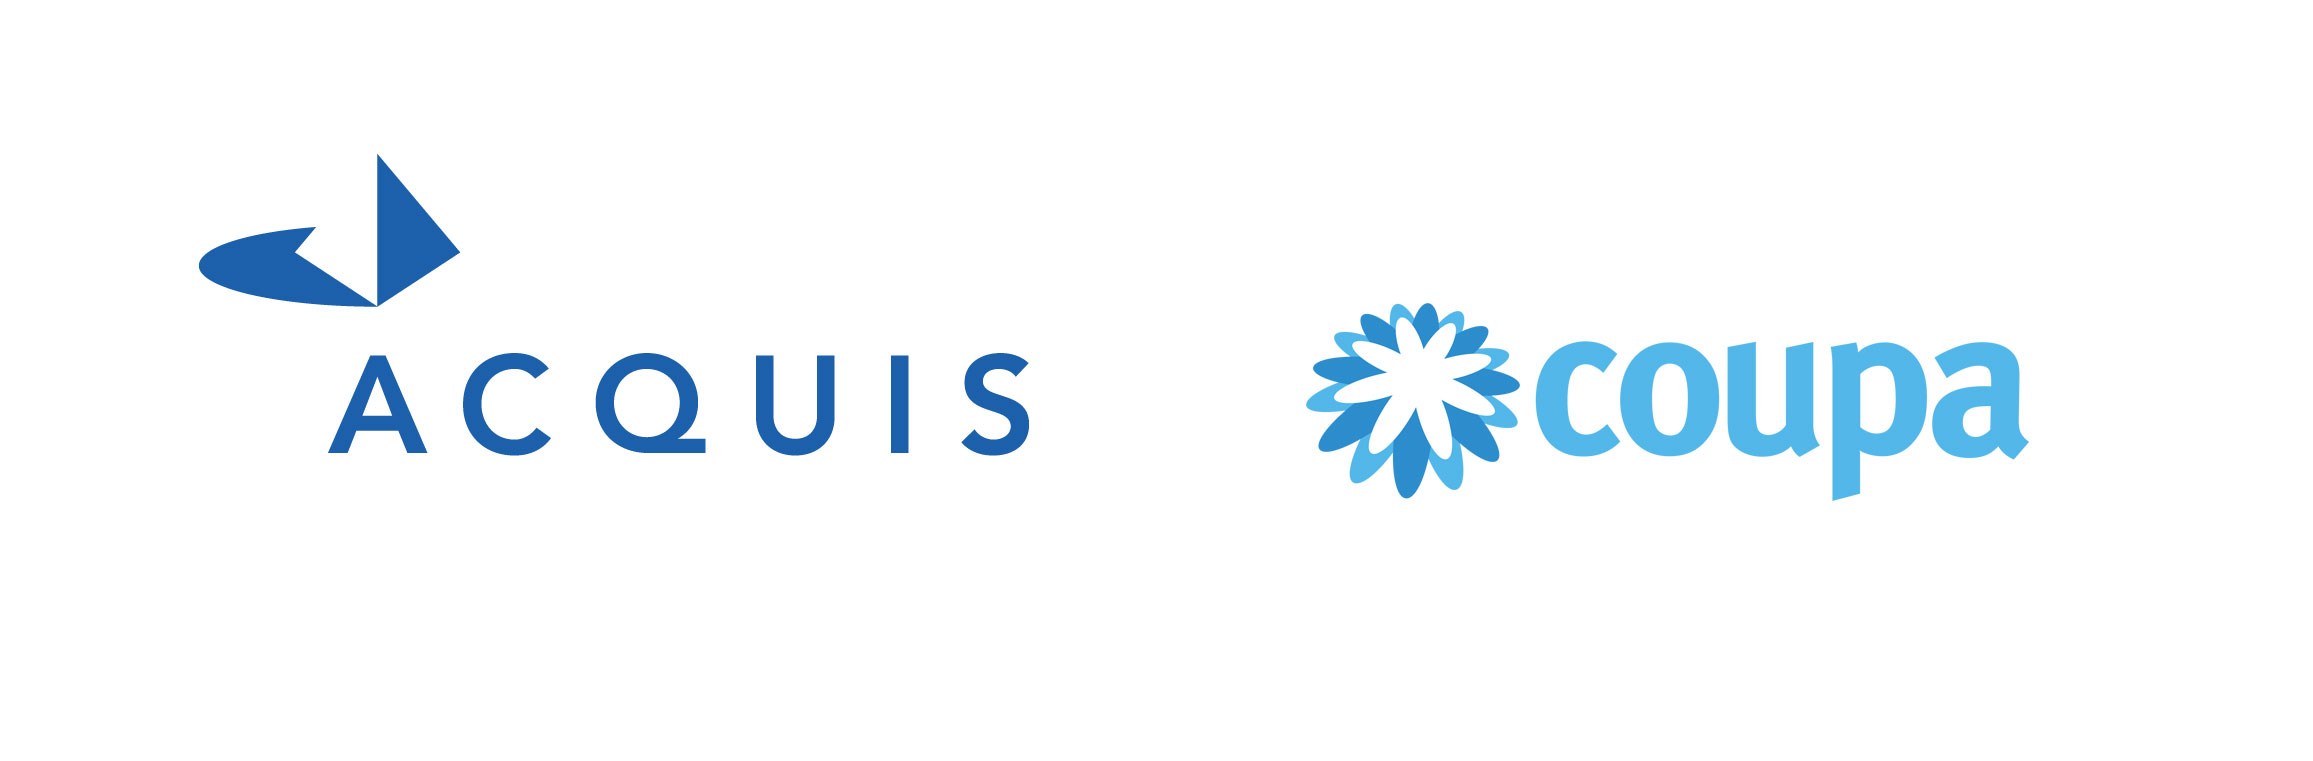 Acquis Consulting Group & Coupa